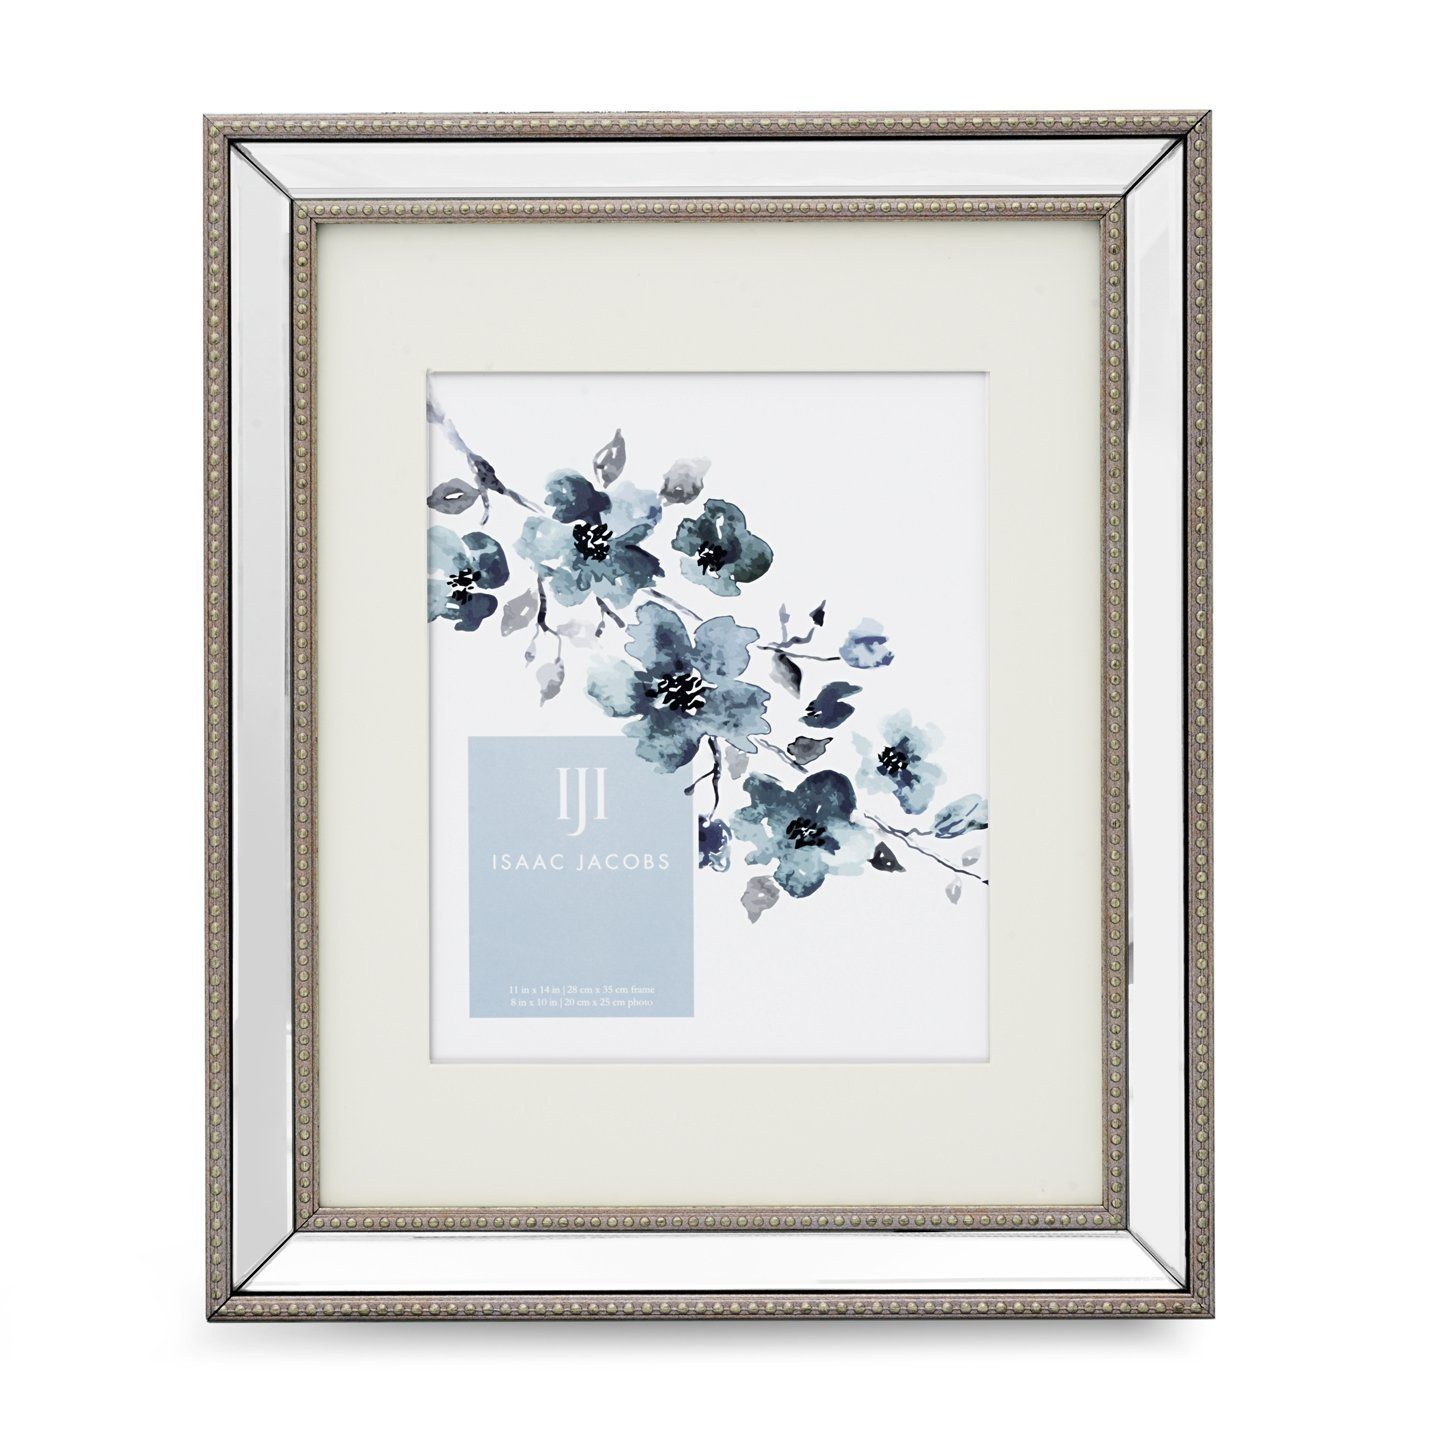 Isaac jacobs mirror bead frame 16x20 matted 11x14 silver isaac jacobs mirror bead frame mat silver this beautiful frame has a beaded finish on a mirrored edge it can be hung on a wall vertically or jeuxipadfo Choice Image